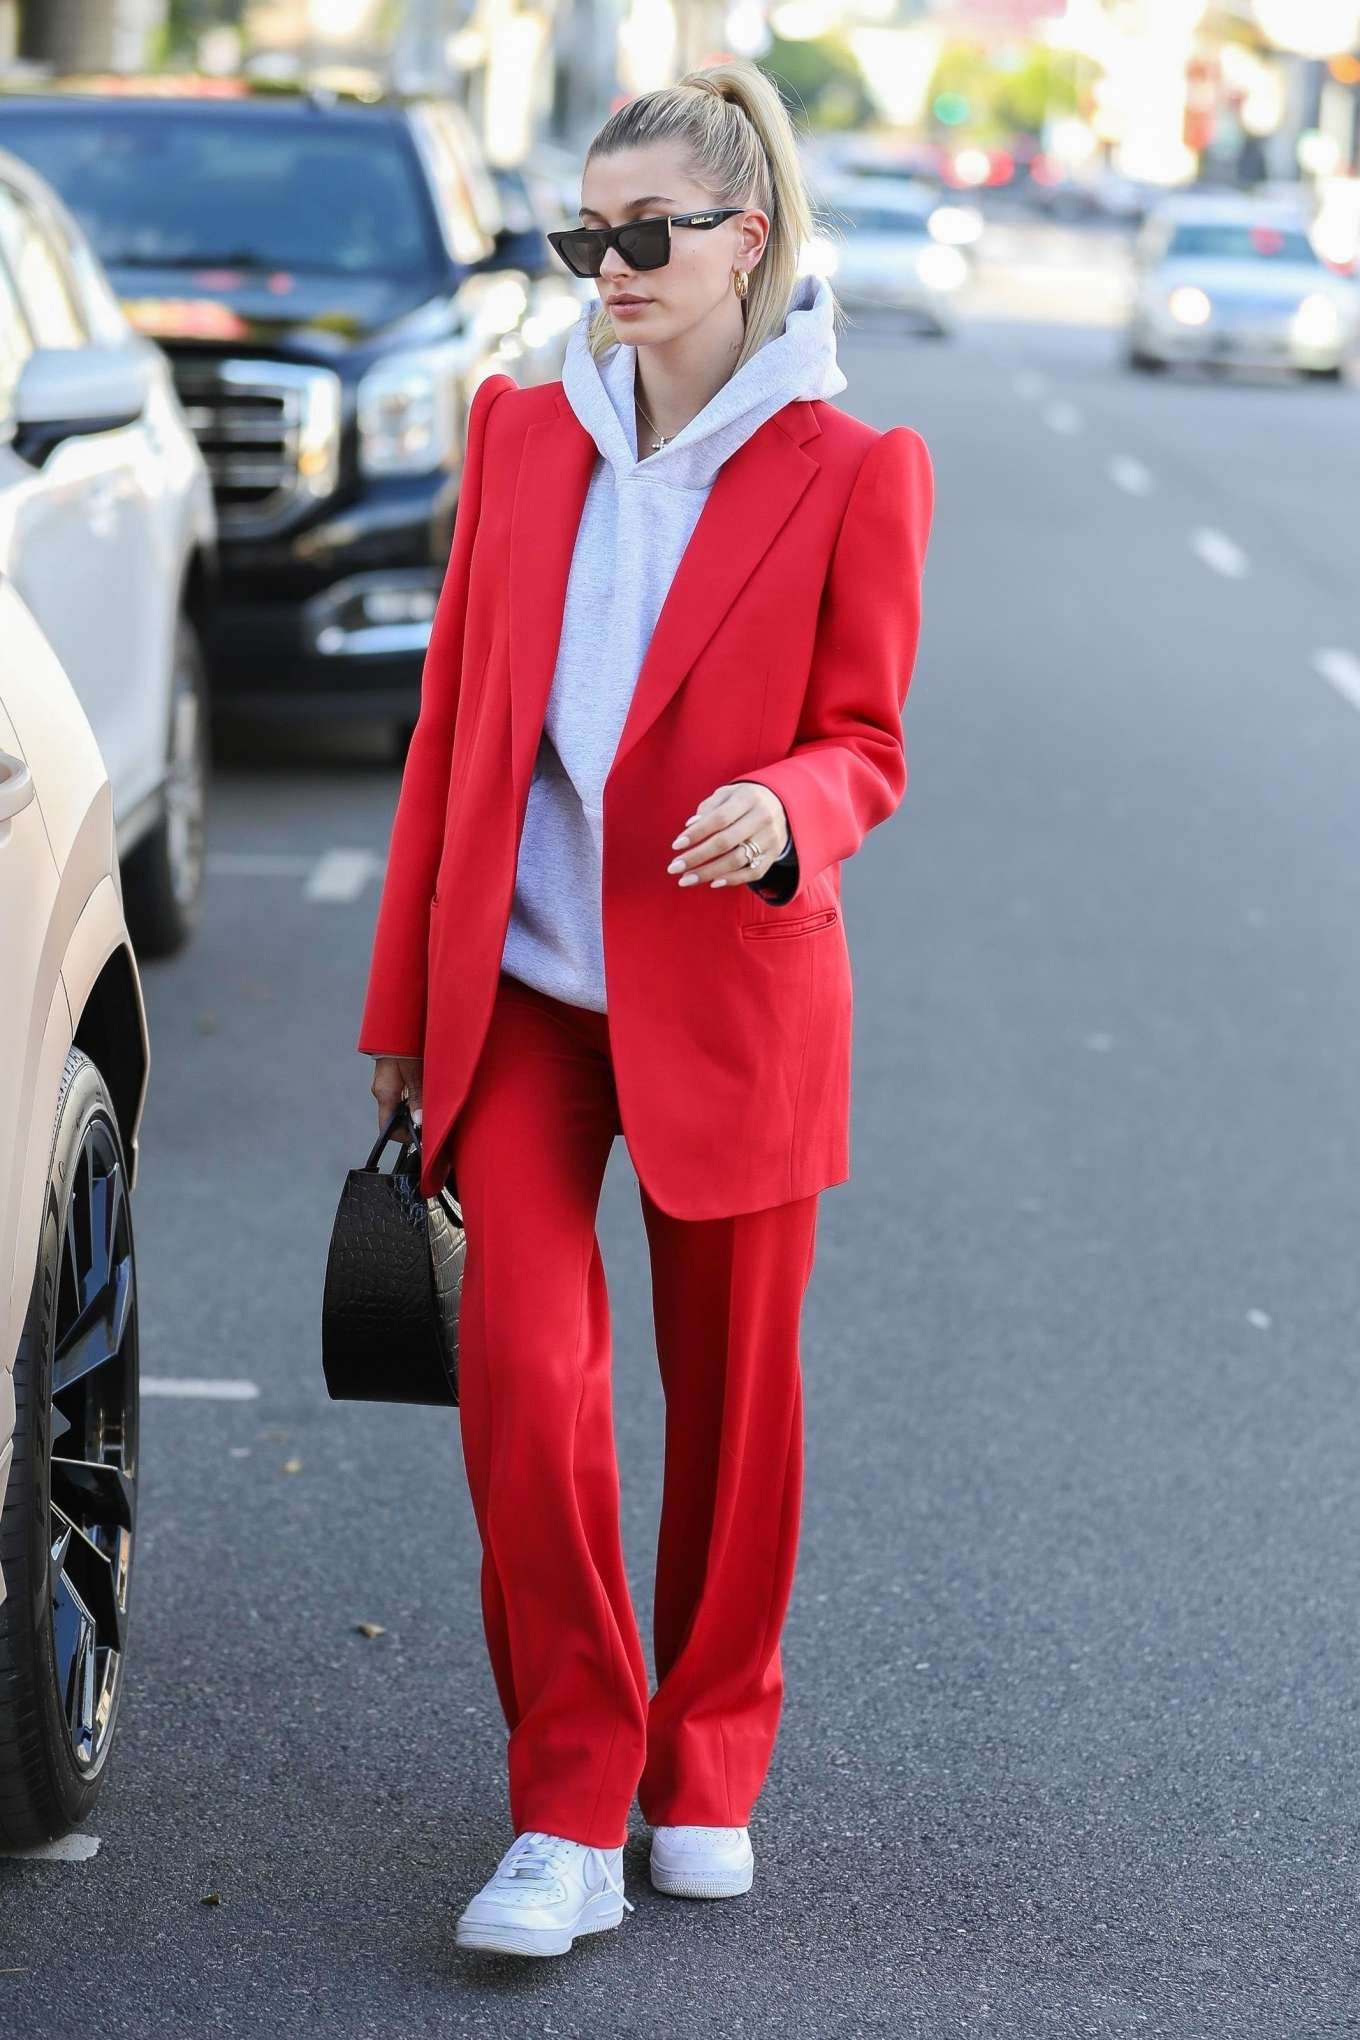 Hailey Bieber 2019 : Hailey Bieber in Red Suit – Out in Beverly Hills-06